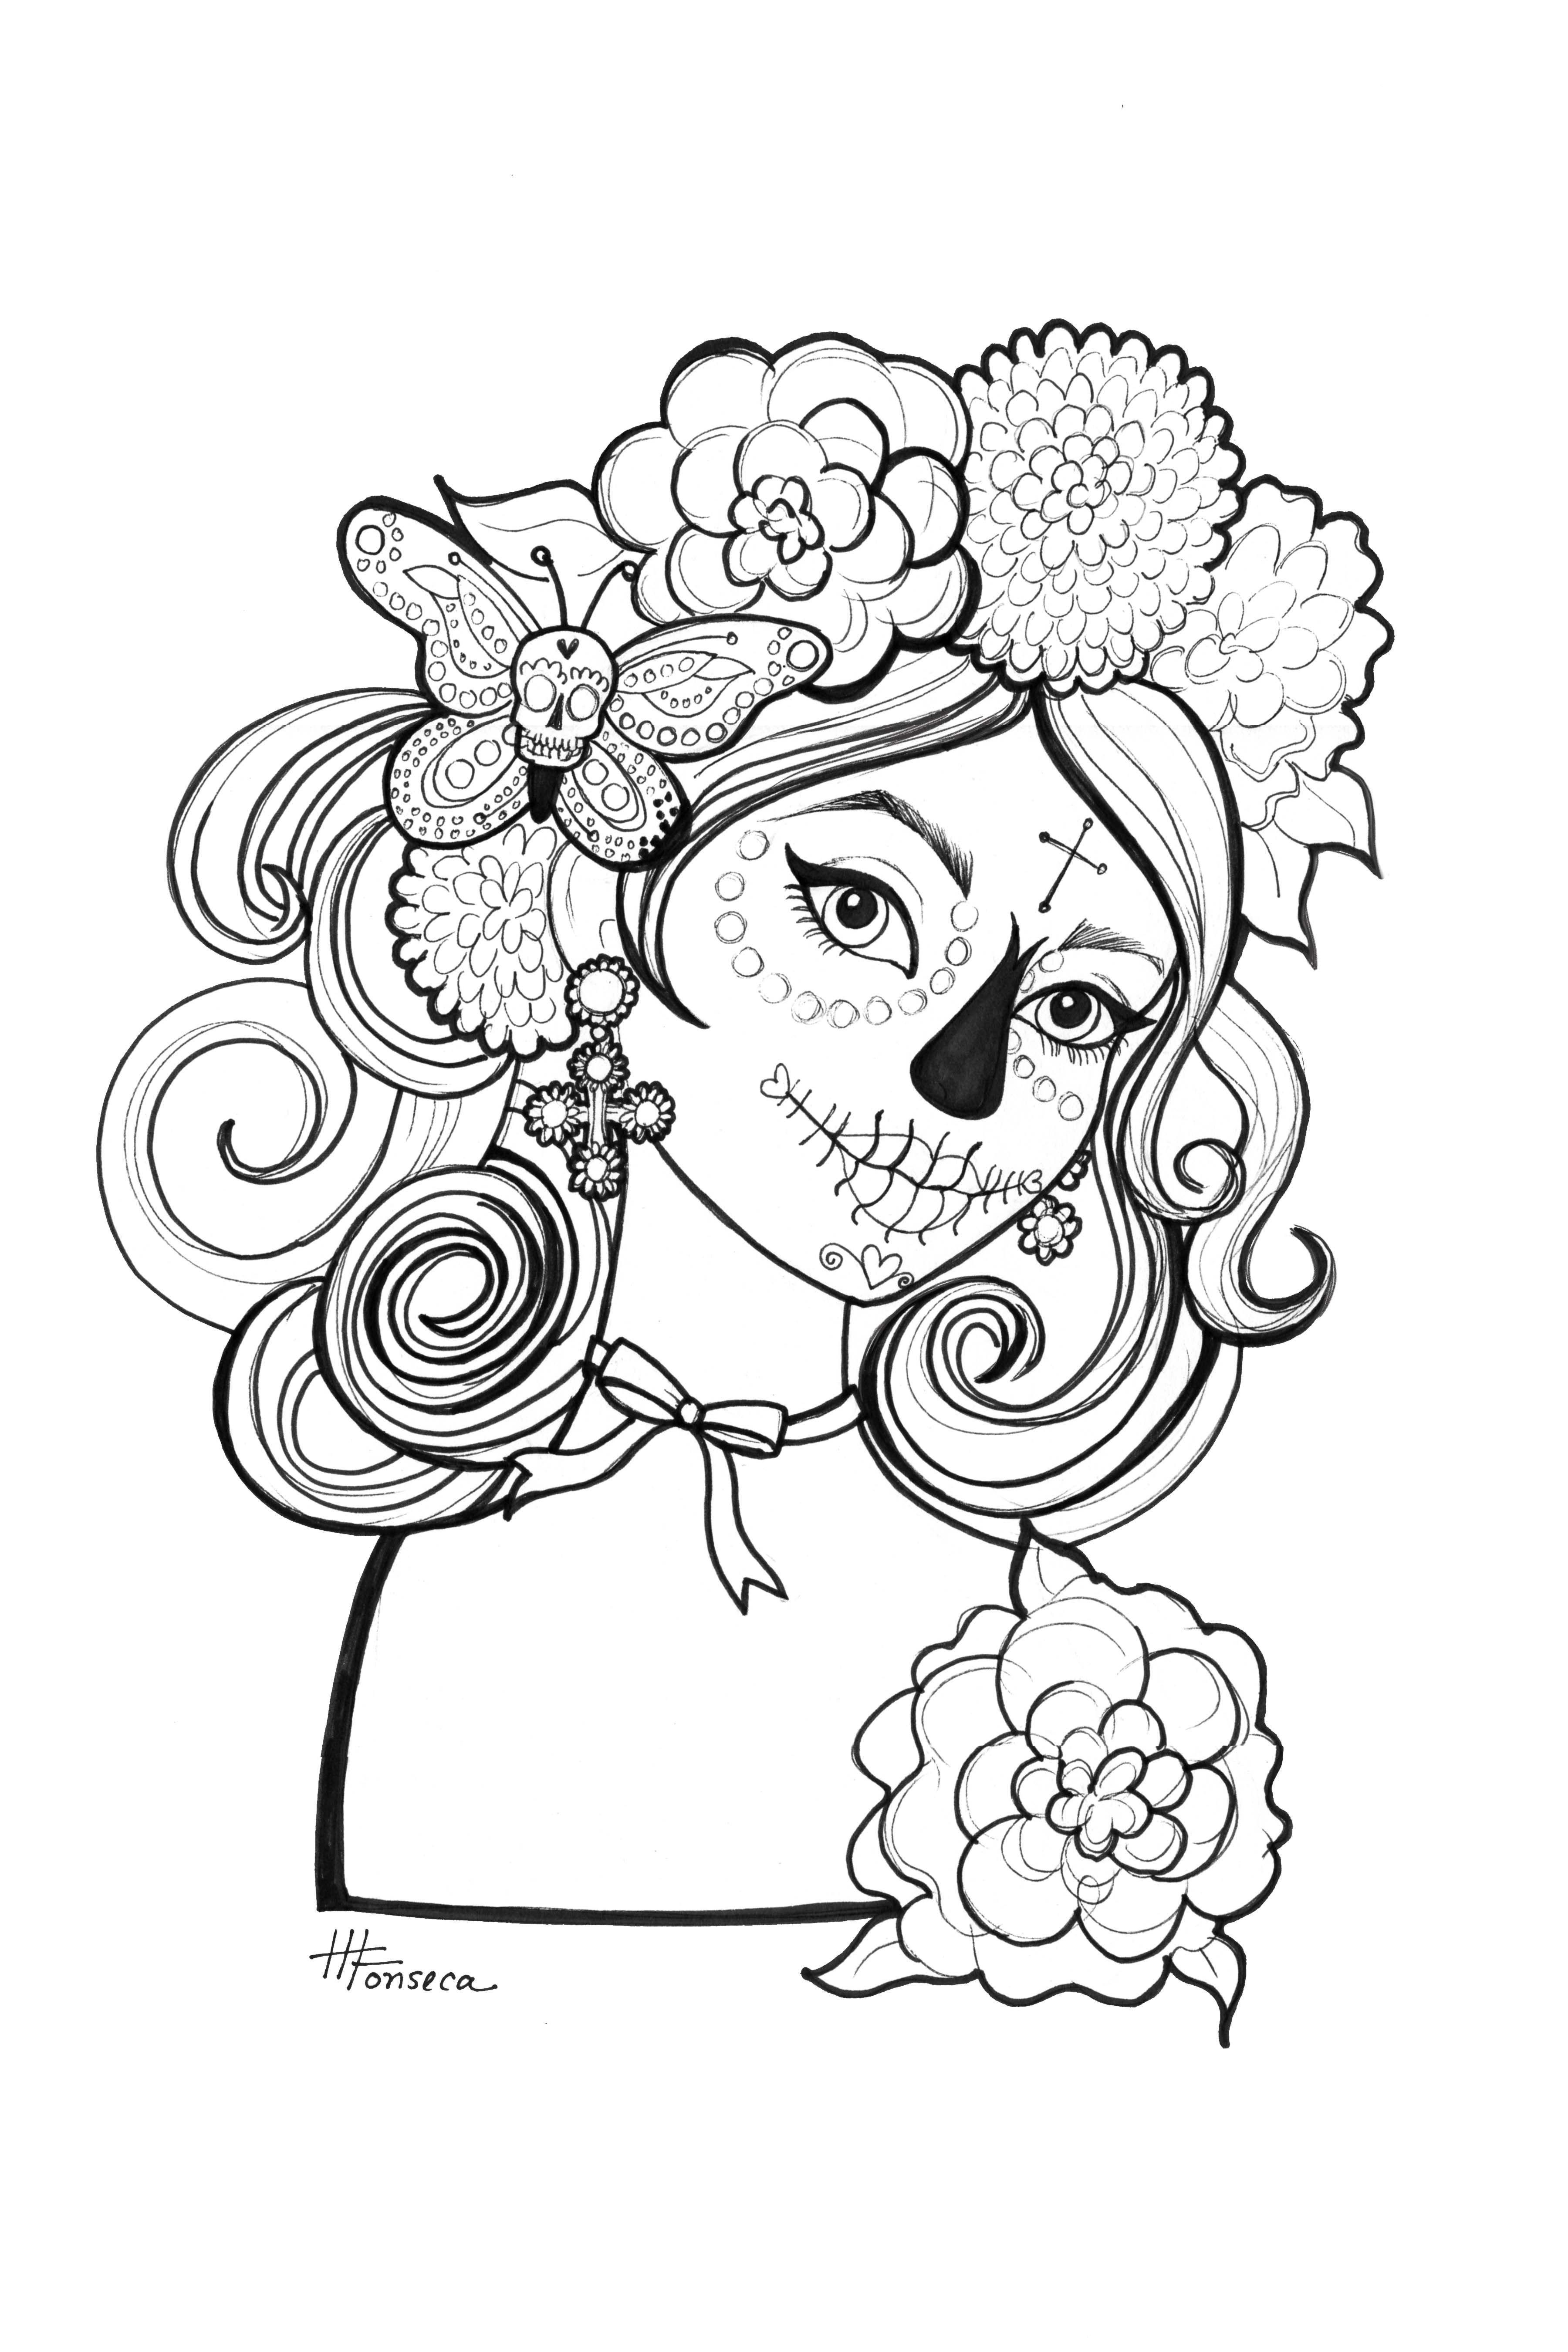 day of the dead coloring sheets free printable day of the dead coloring book page by of dead coloring sheets the day